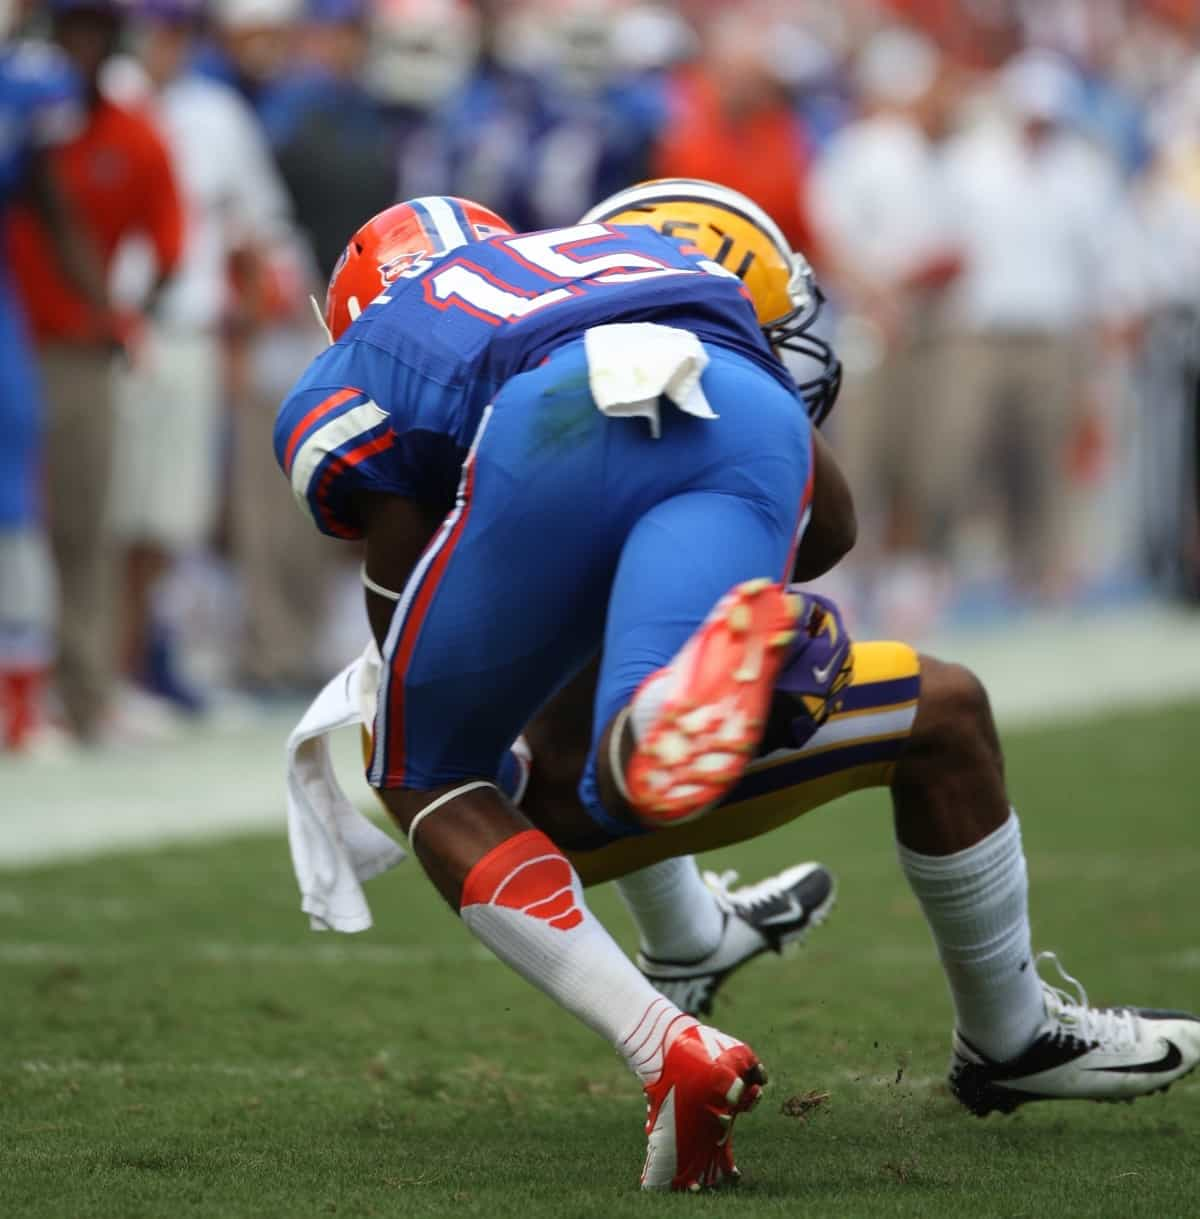 The new targeting rule in college football is sure to create controversy next season.